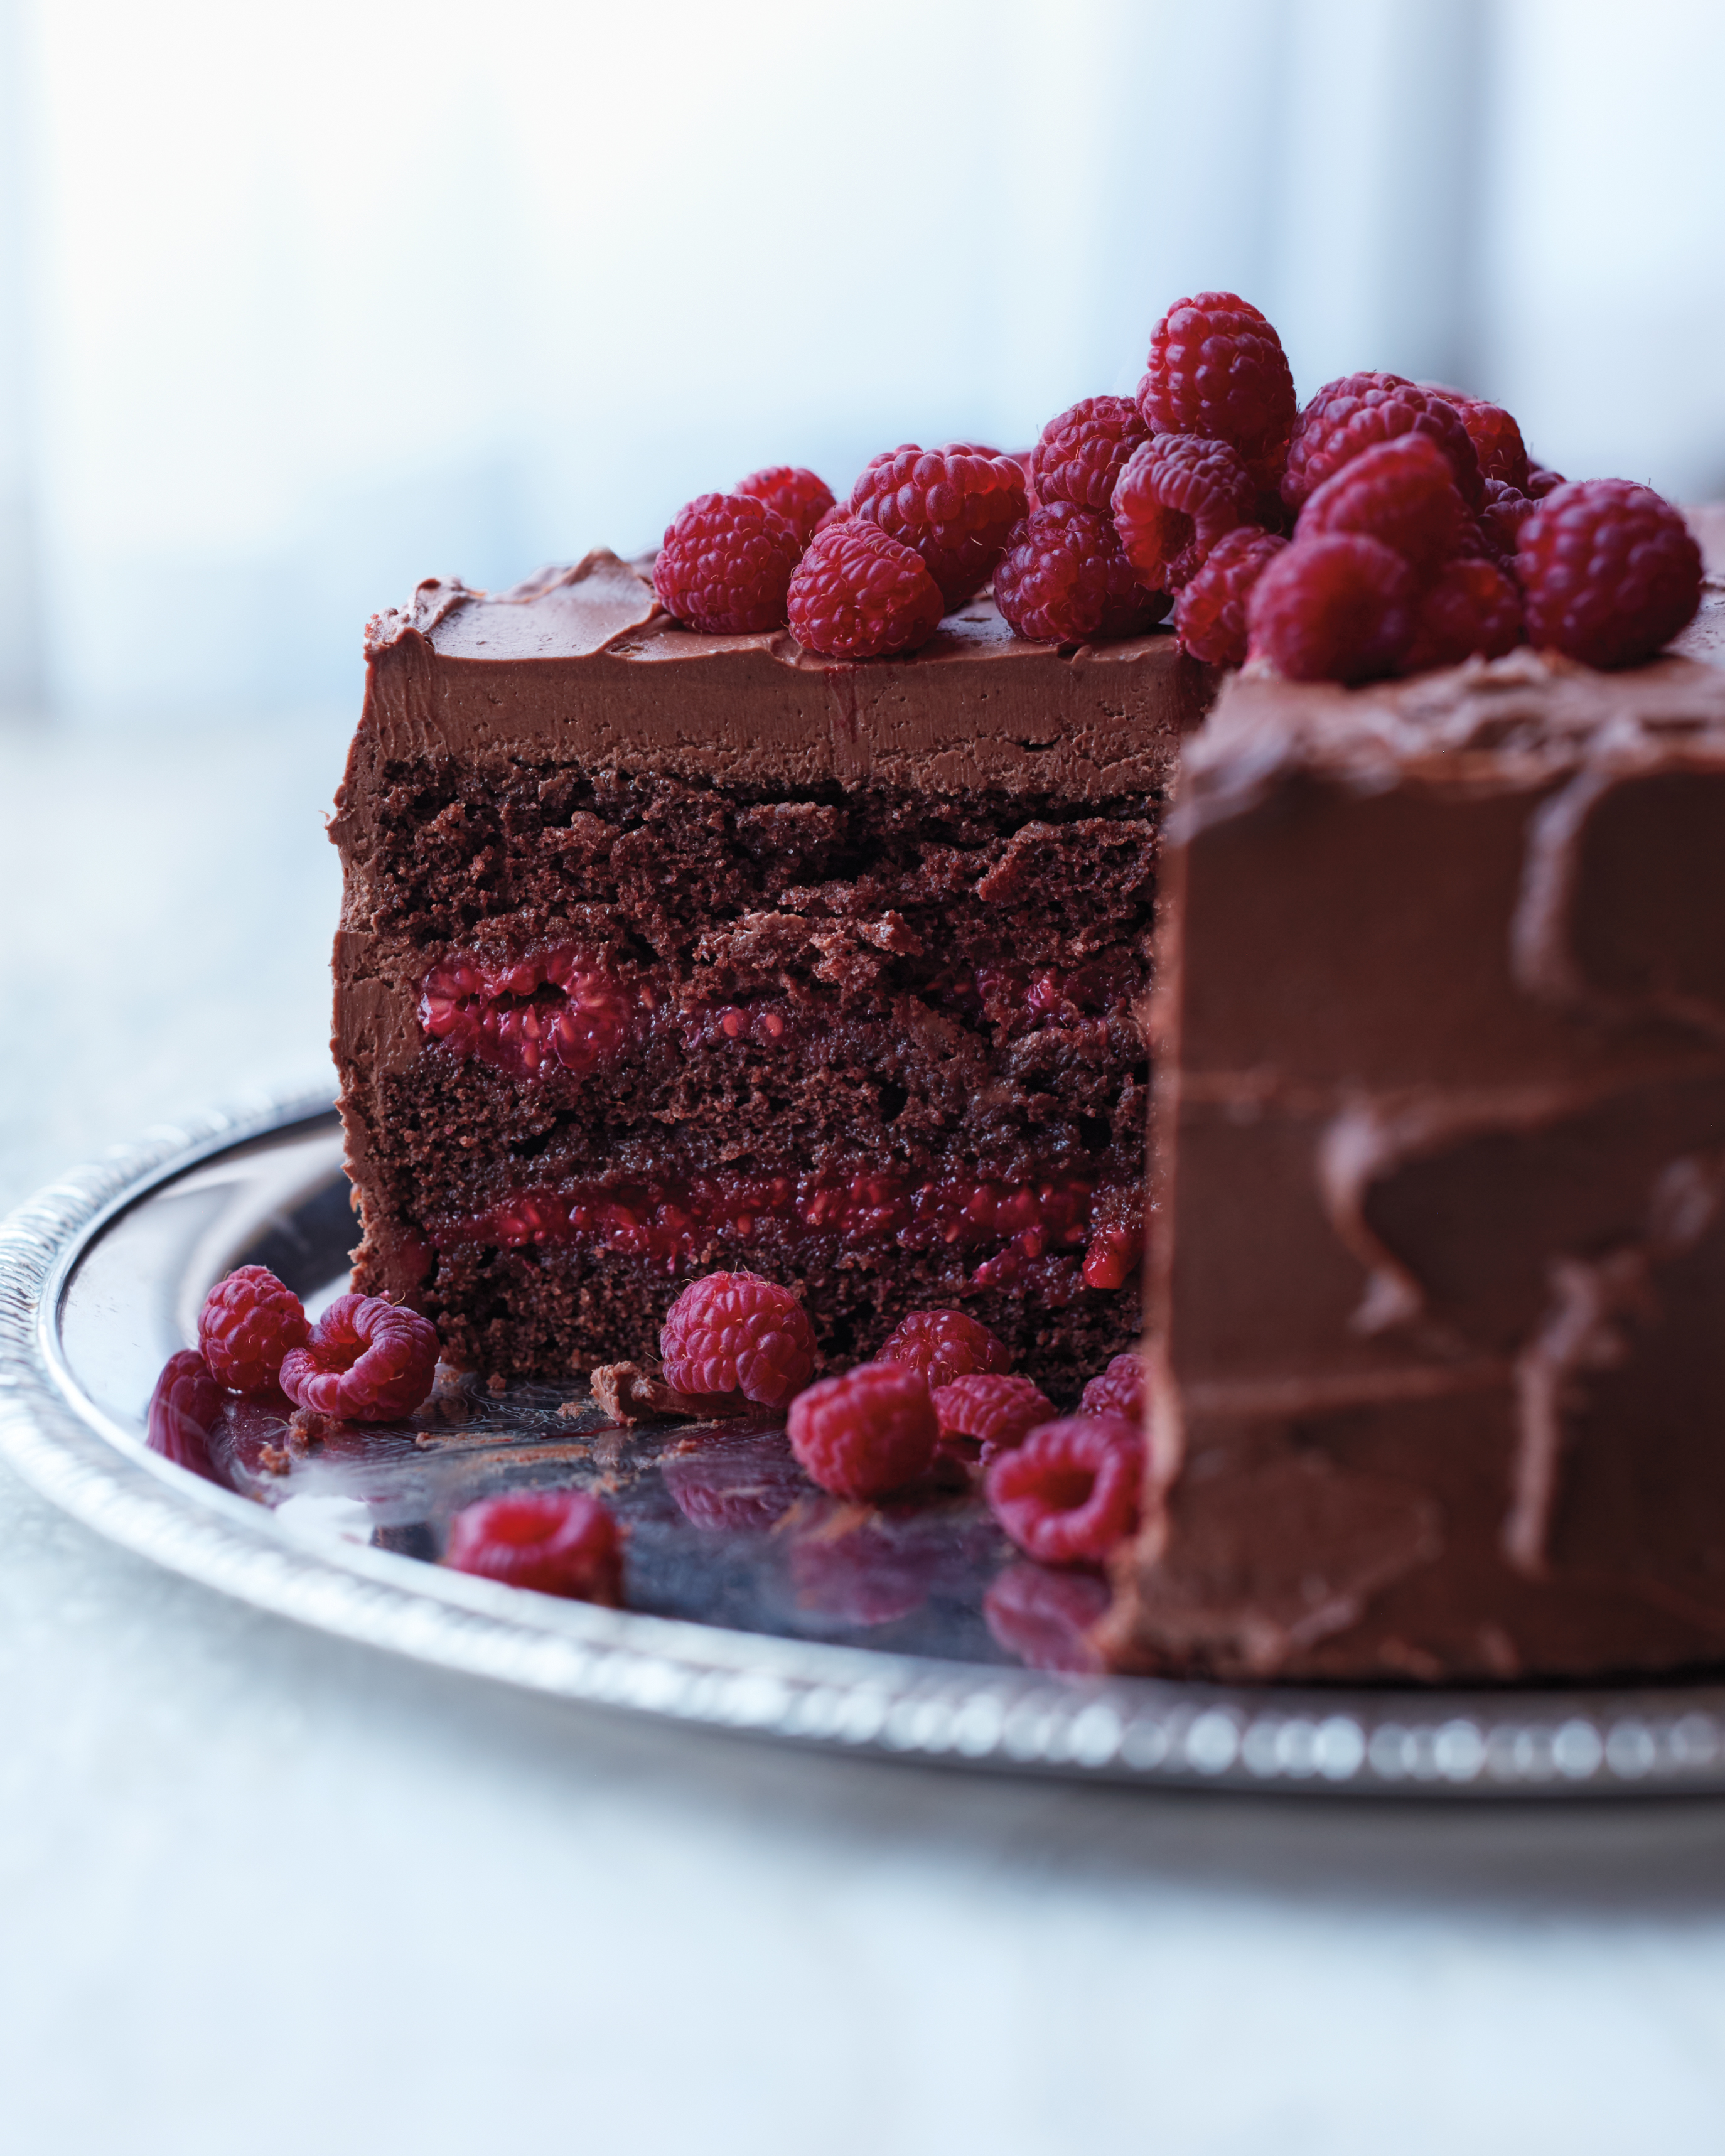 chocolate-layer-cake-024-d112571.jpg